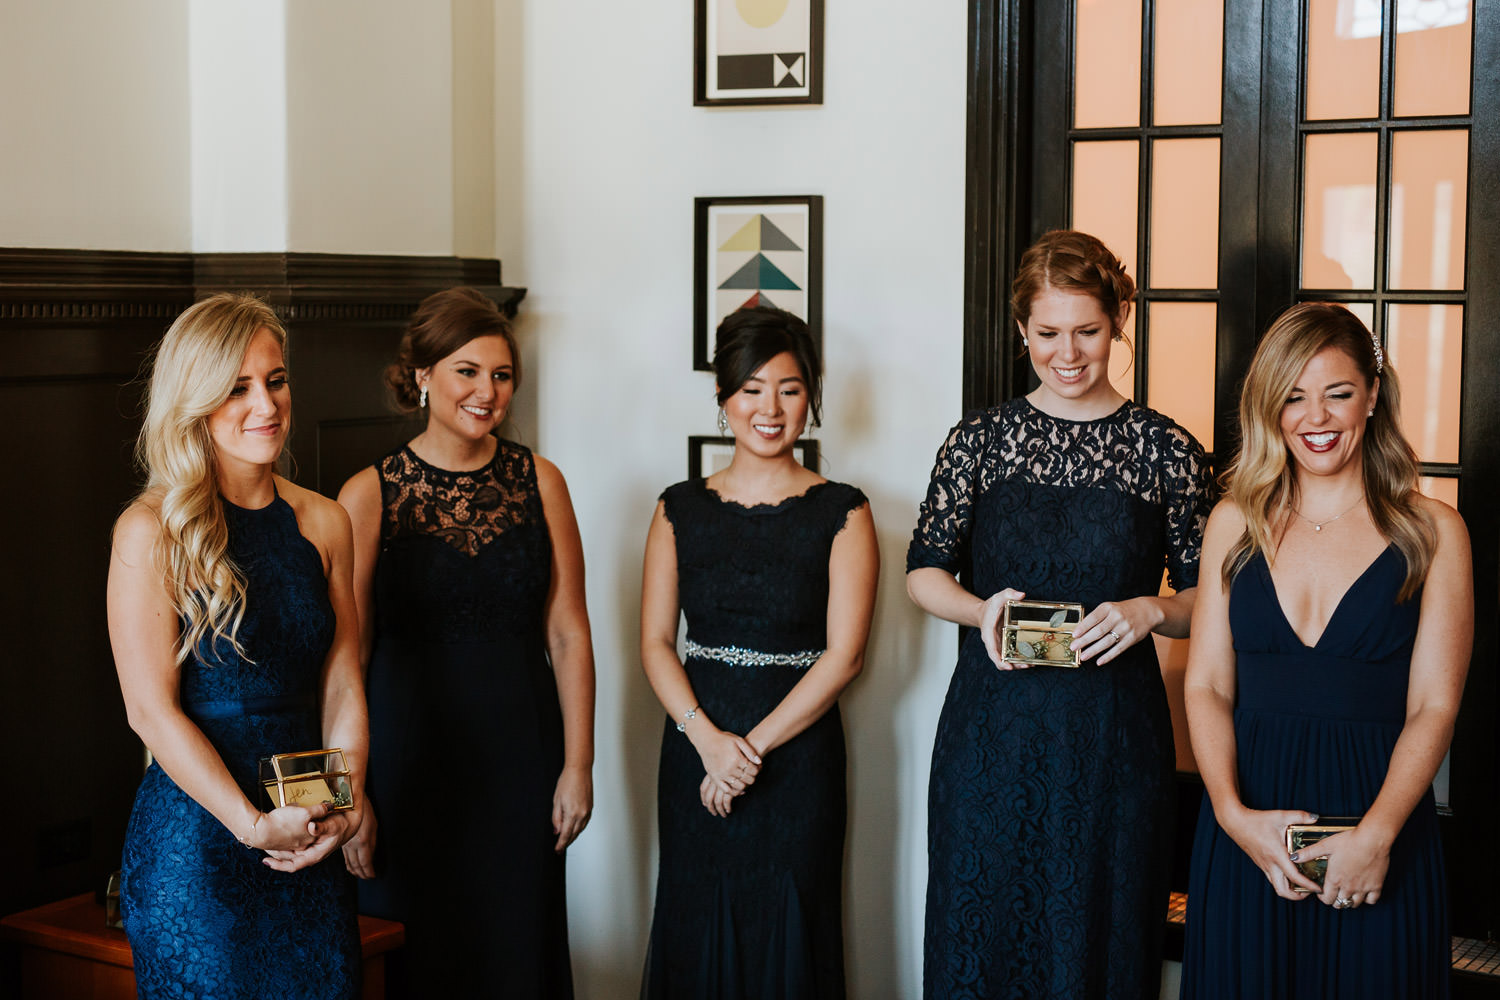 braid maids watching the bride put her wedding dress on at chicago athletic association hotel